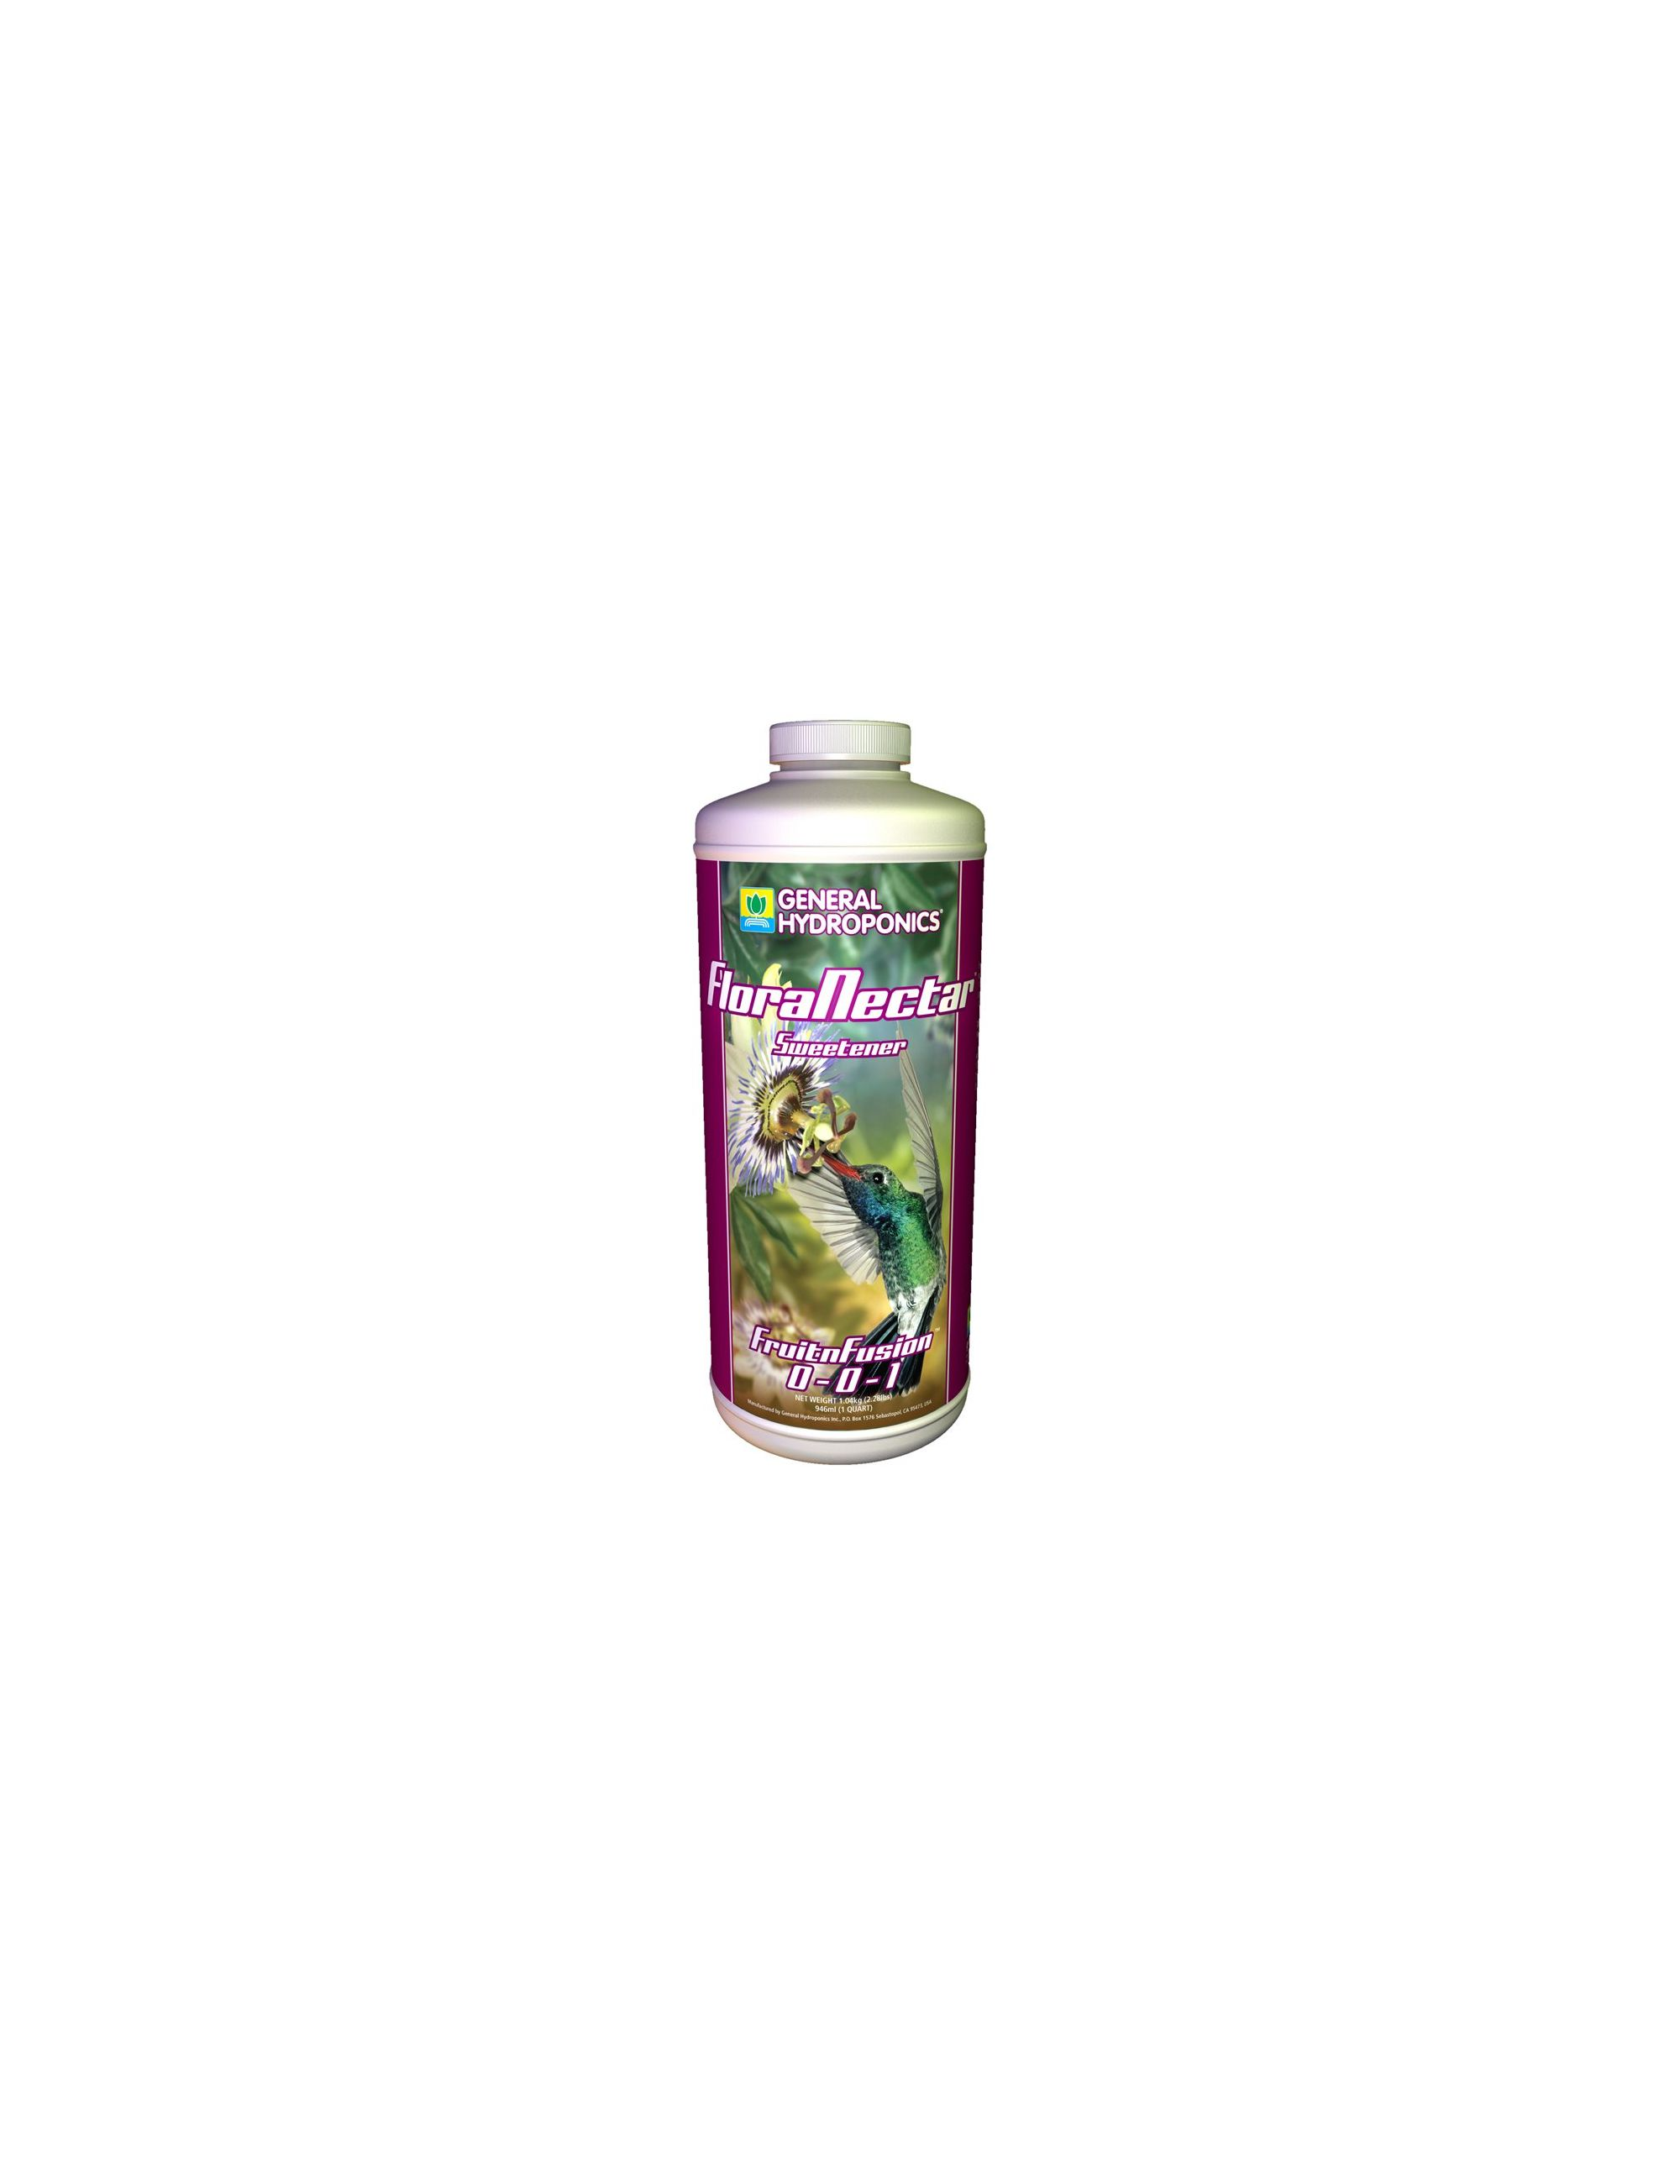 FLORA NECTAR FRUIT INFUSION 1 QUART